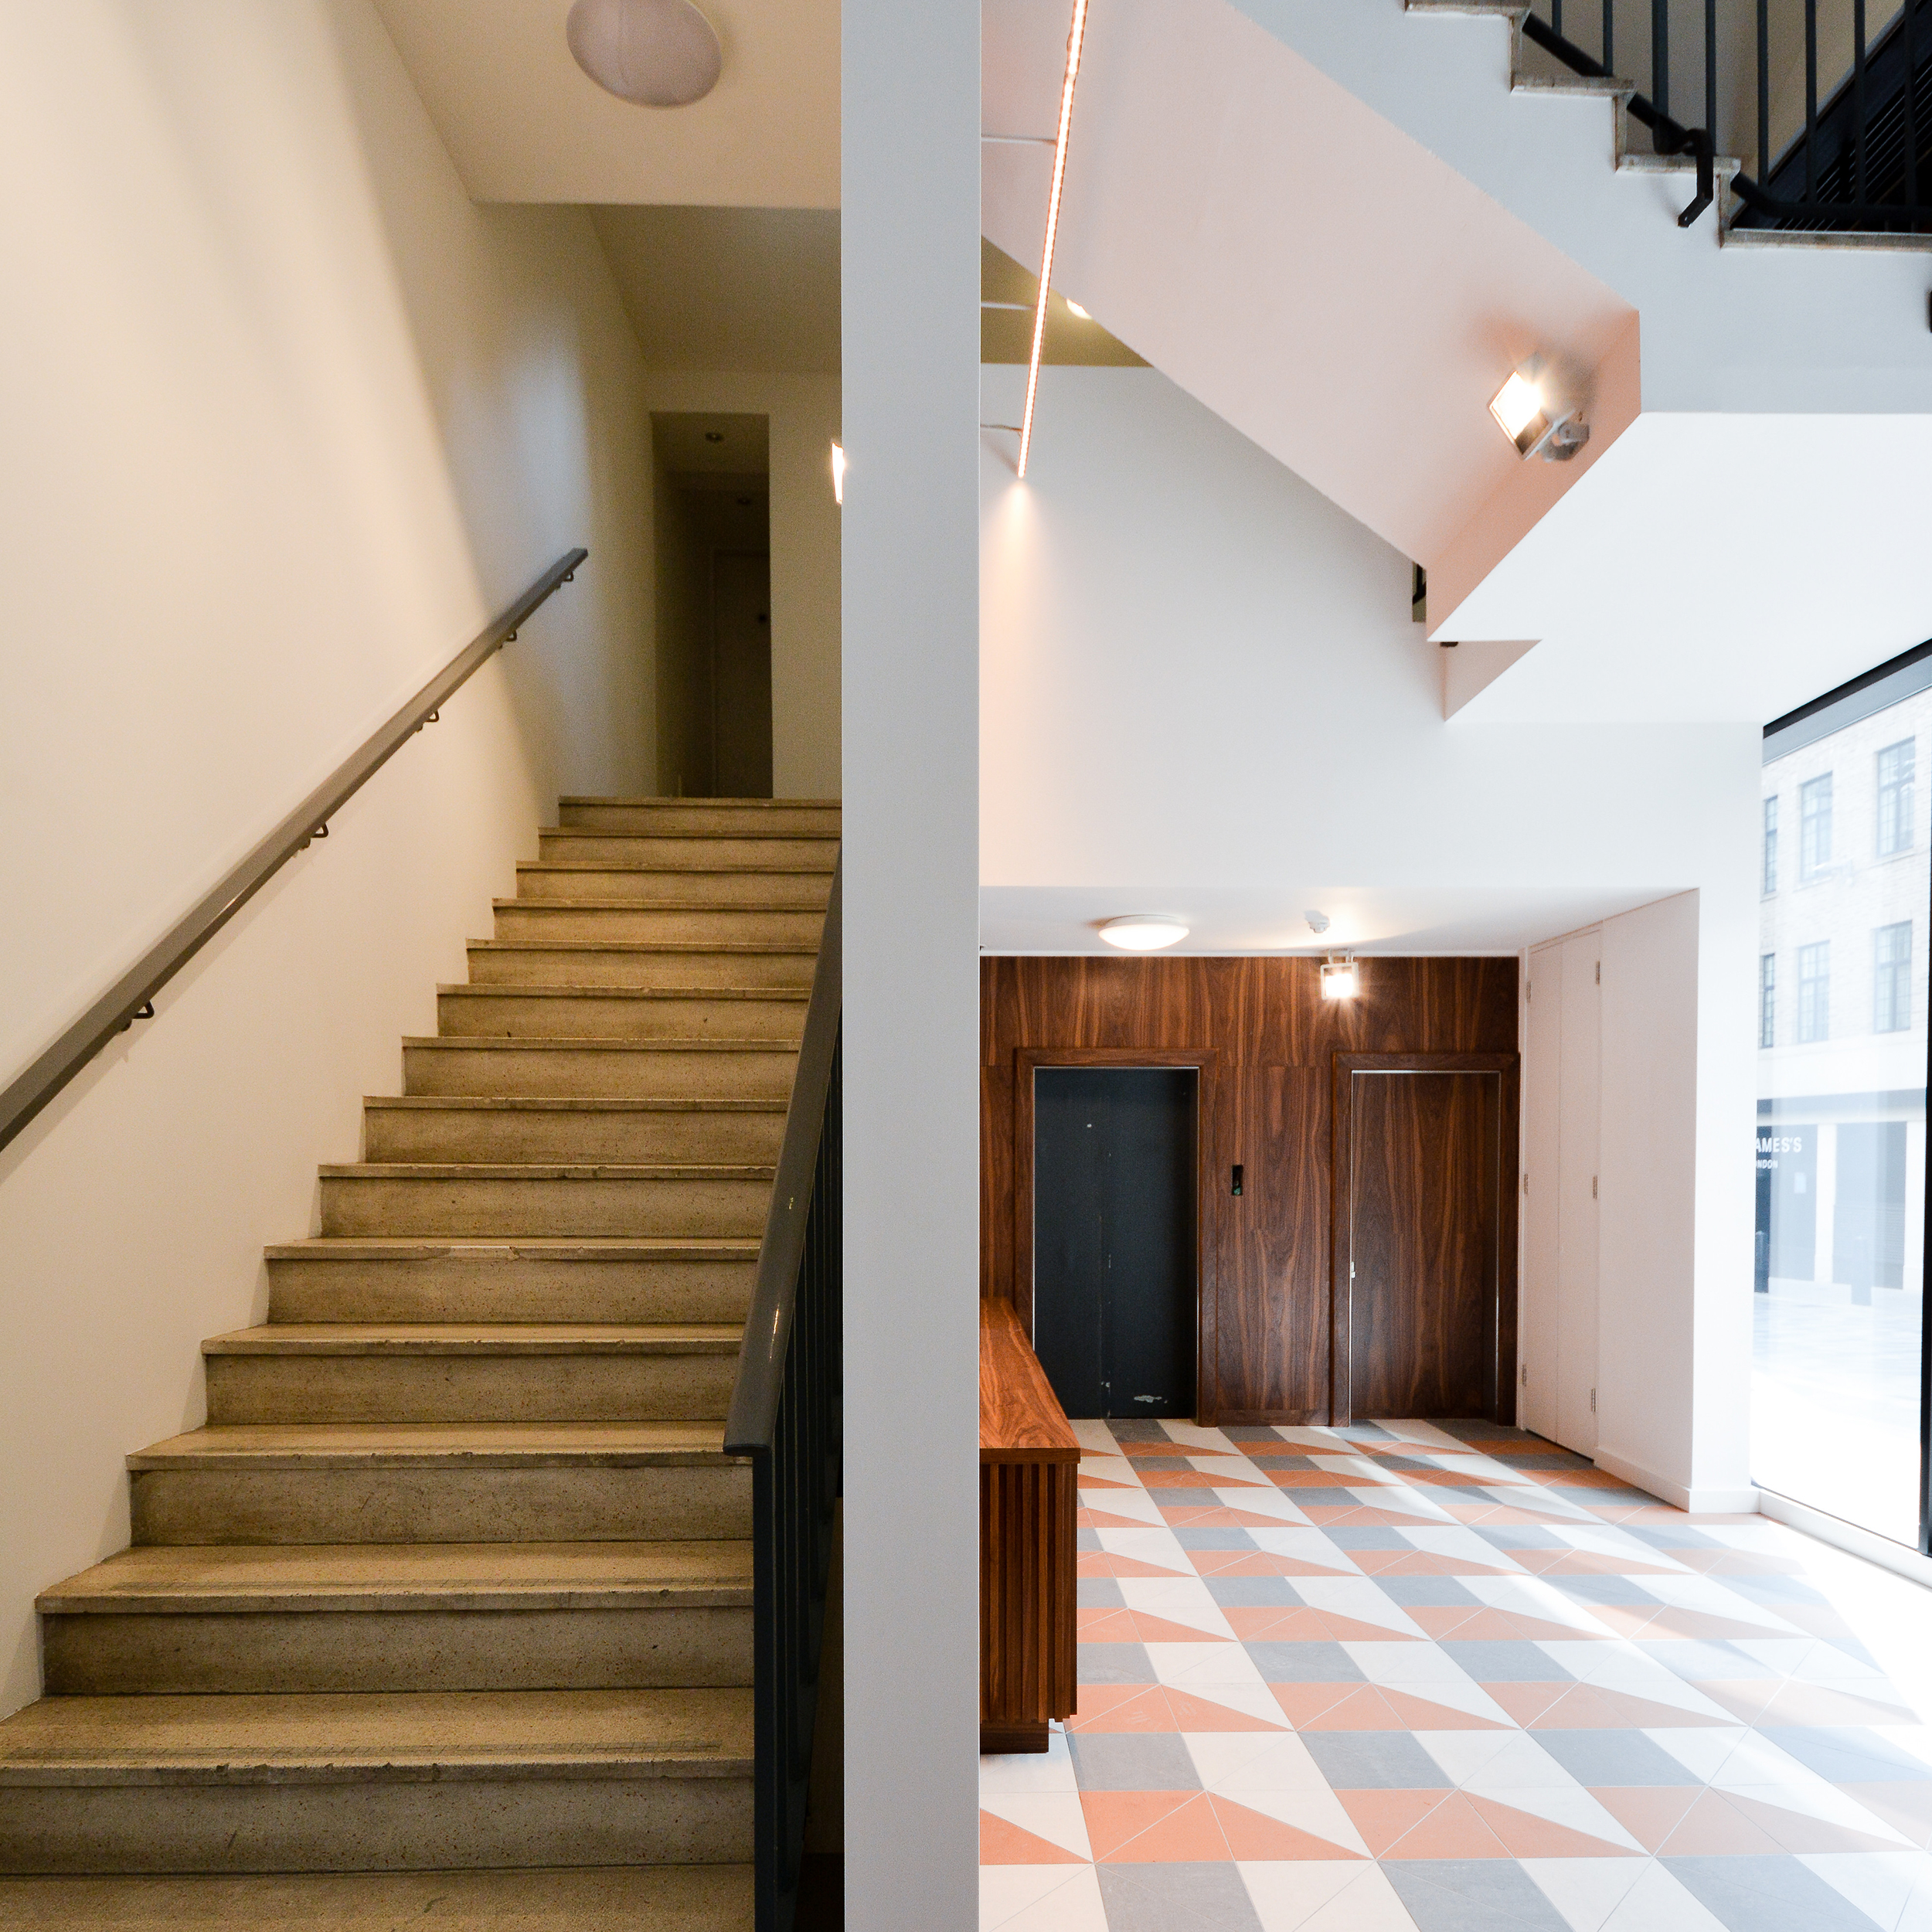 multiple internal staircases inside a corporate office space reception that has undergone refurb works